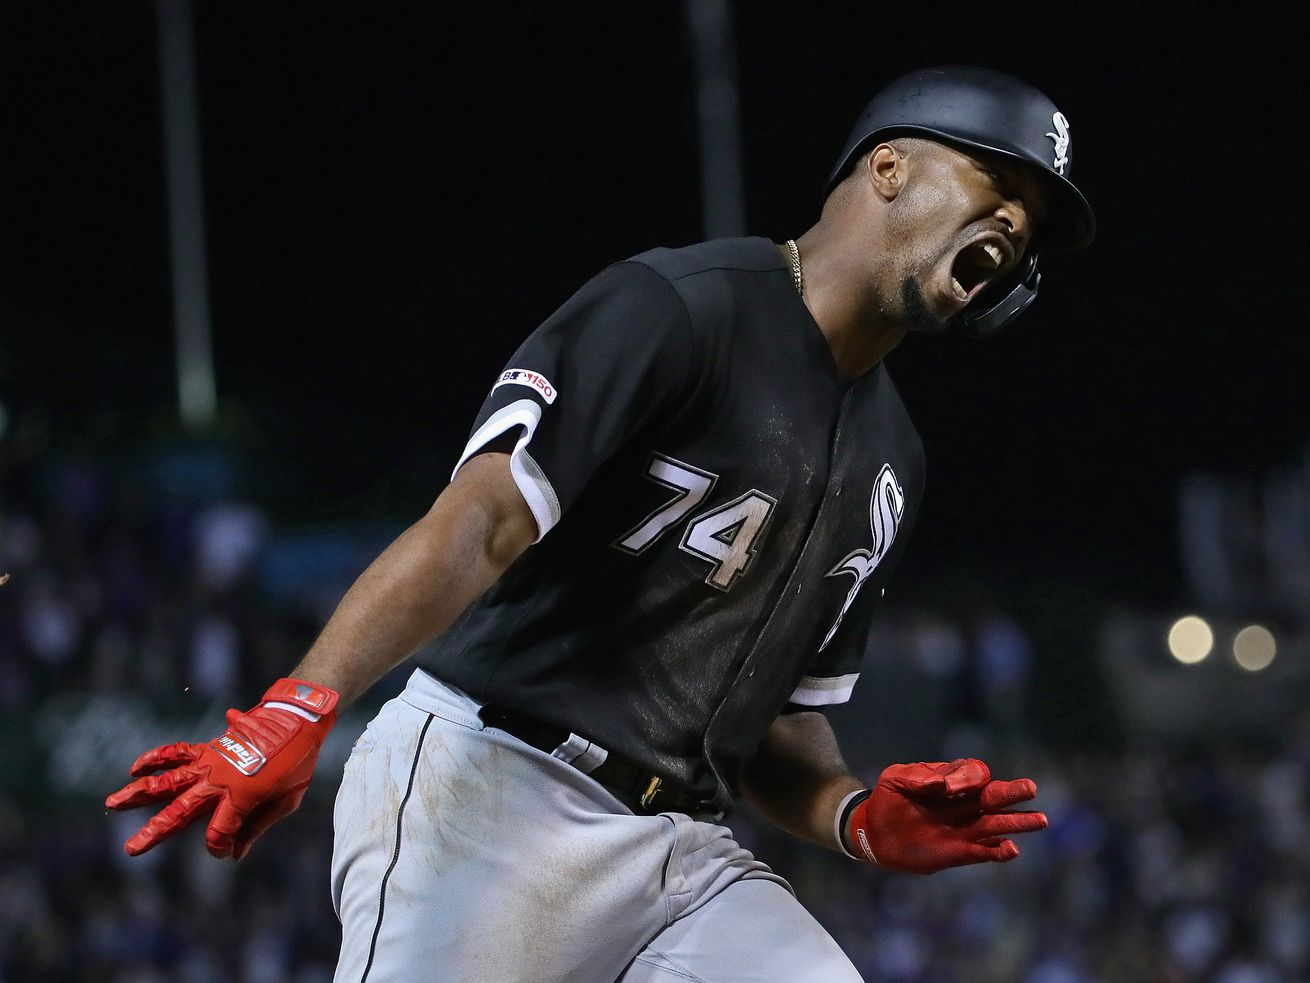 Cubs, White Sox good at the same time? Here's a wacky idea: Let's keep it that way